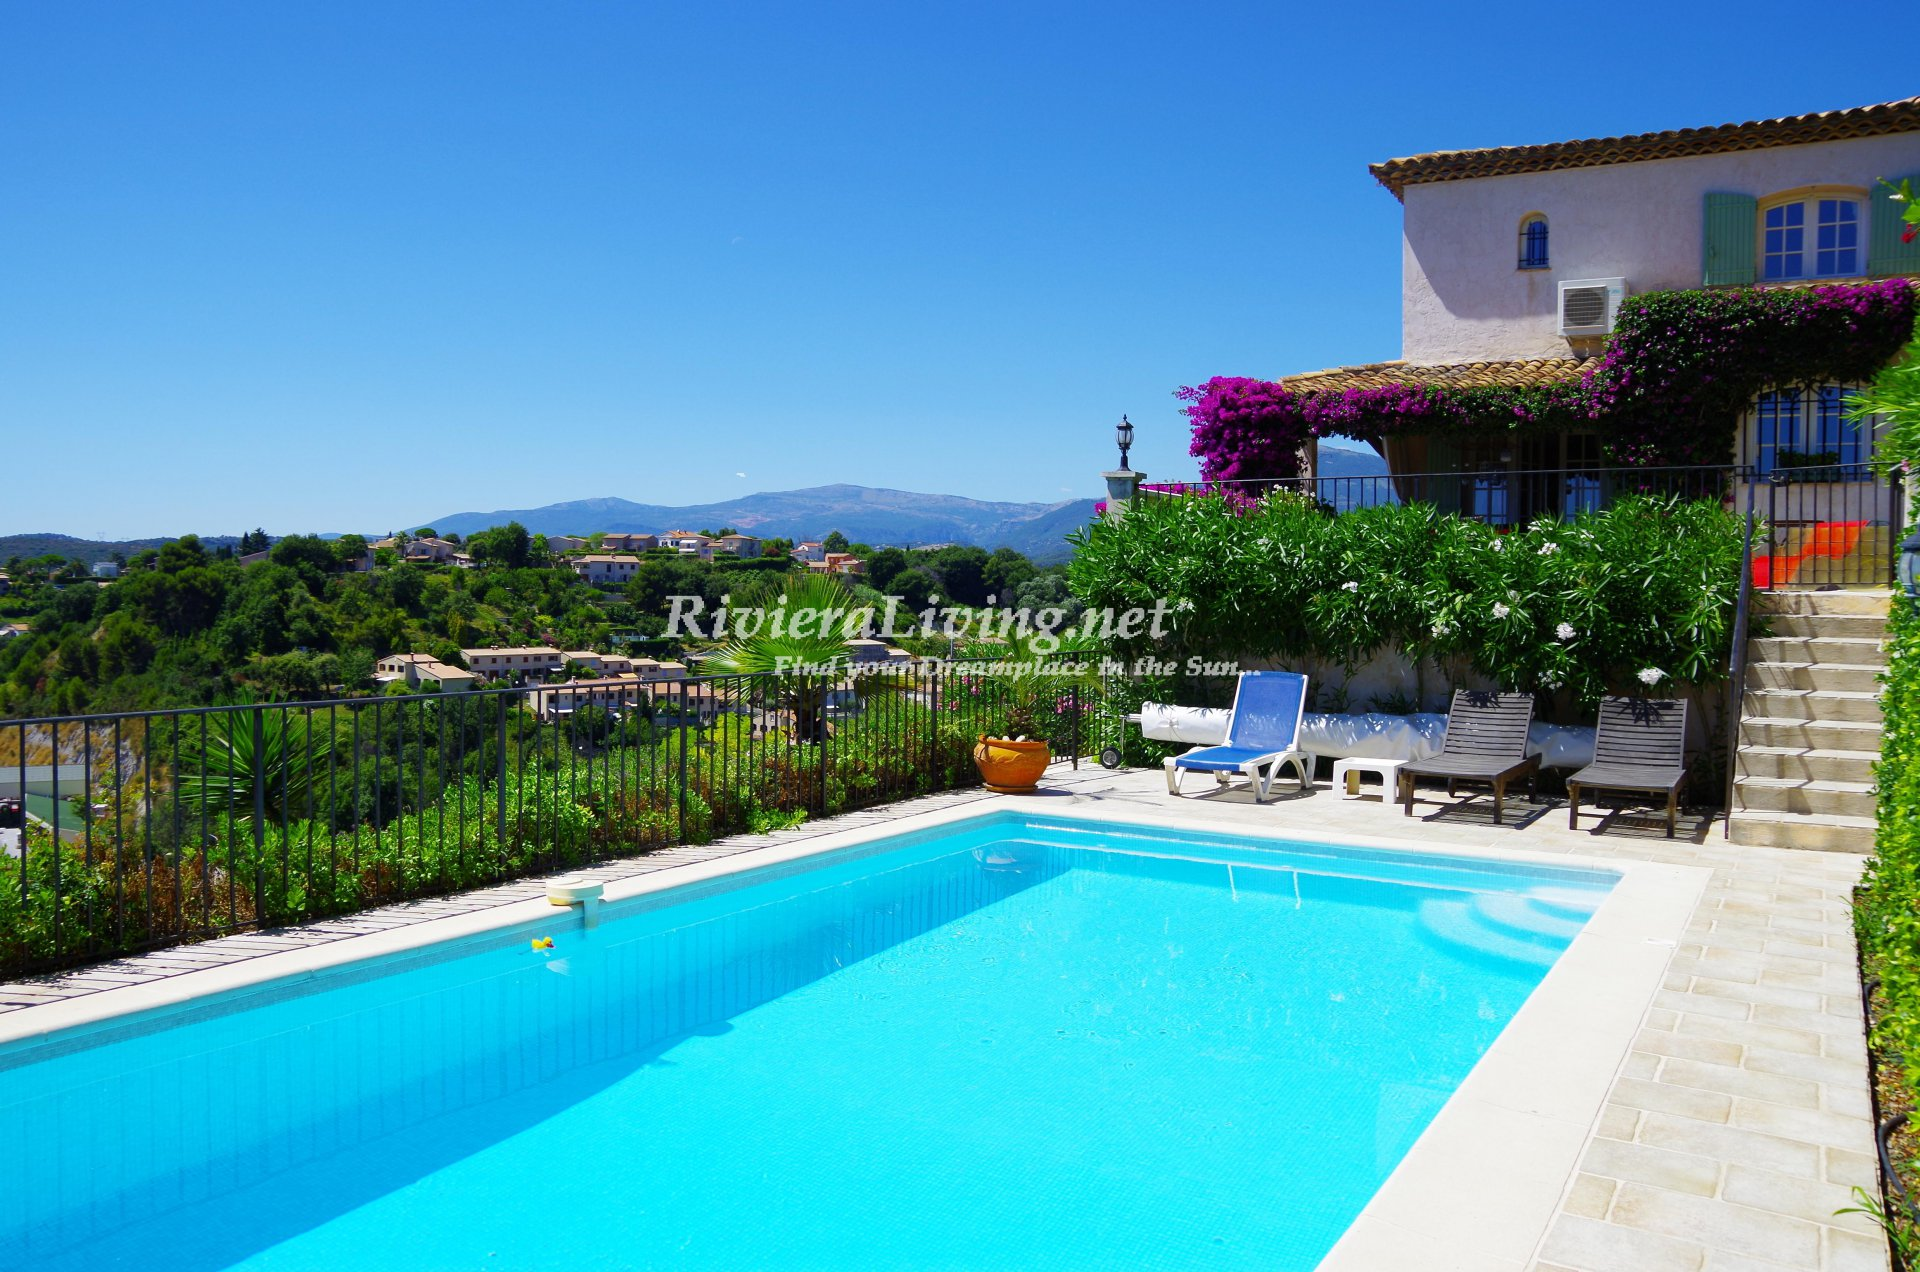 CAGNES SUR MER --- 	Luxurious and cozy provencal villa with pool and sea view facing Haut de Cagnes.